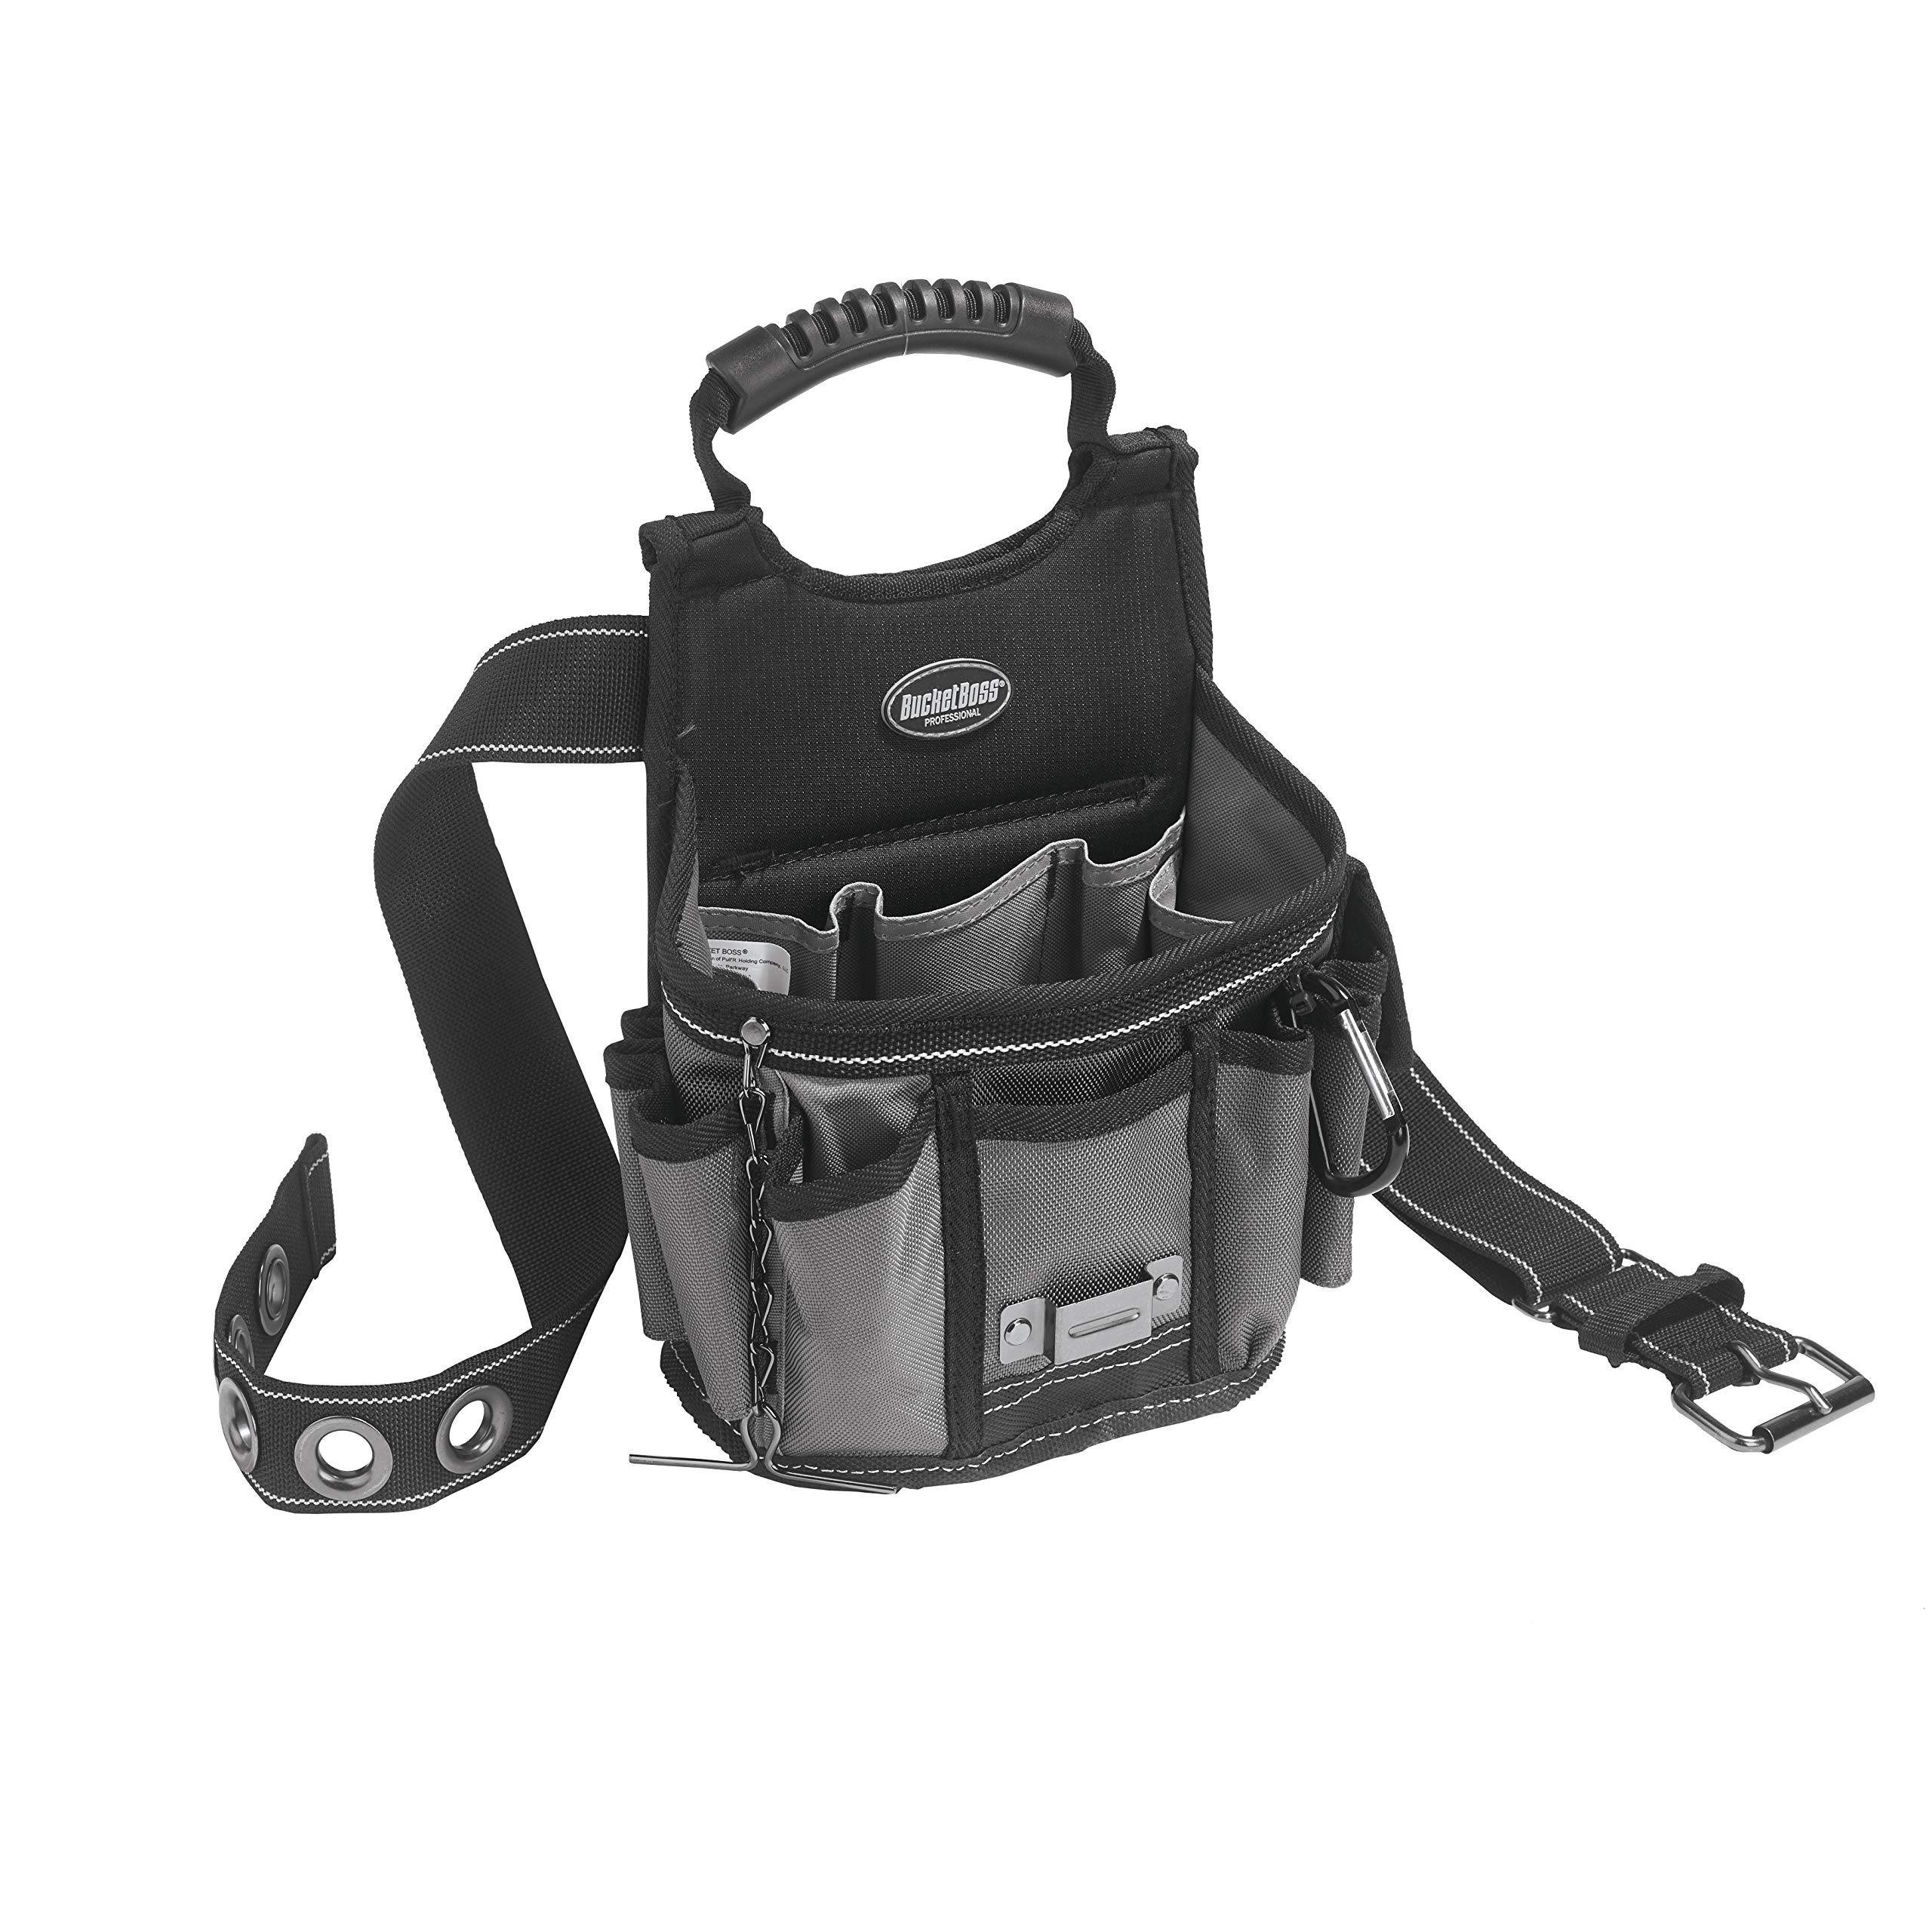 Bucket Boss - Sparky Utility Pouch, Pouches - Professional Series (55300), Gray